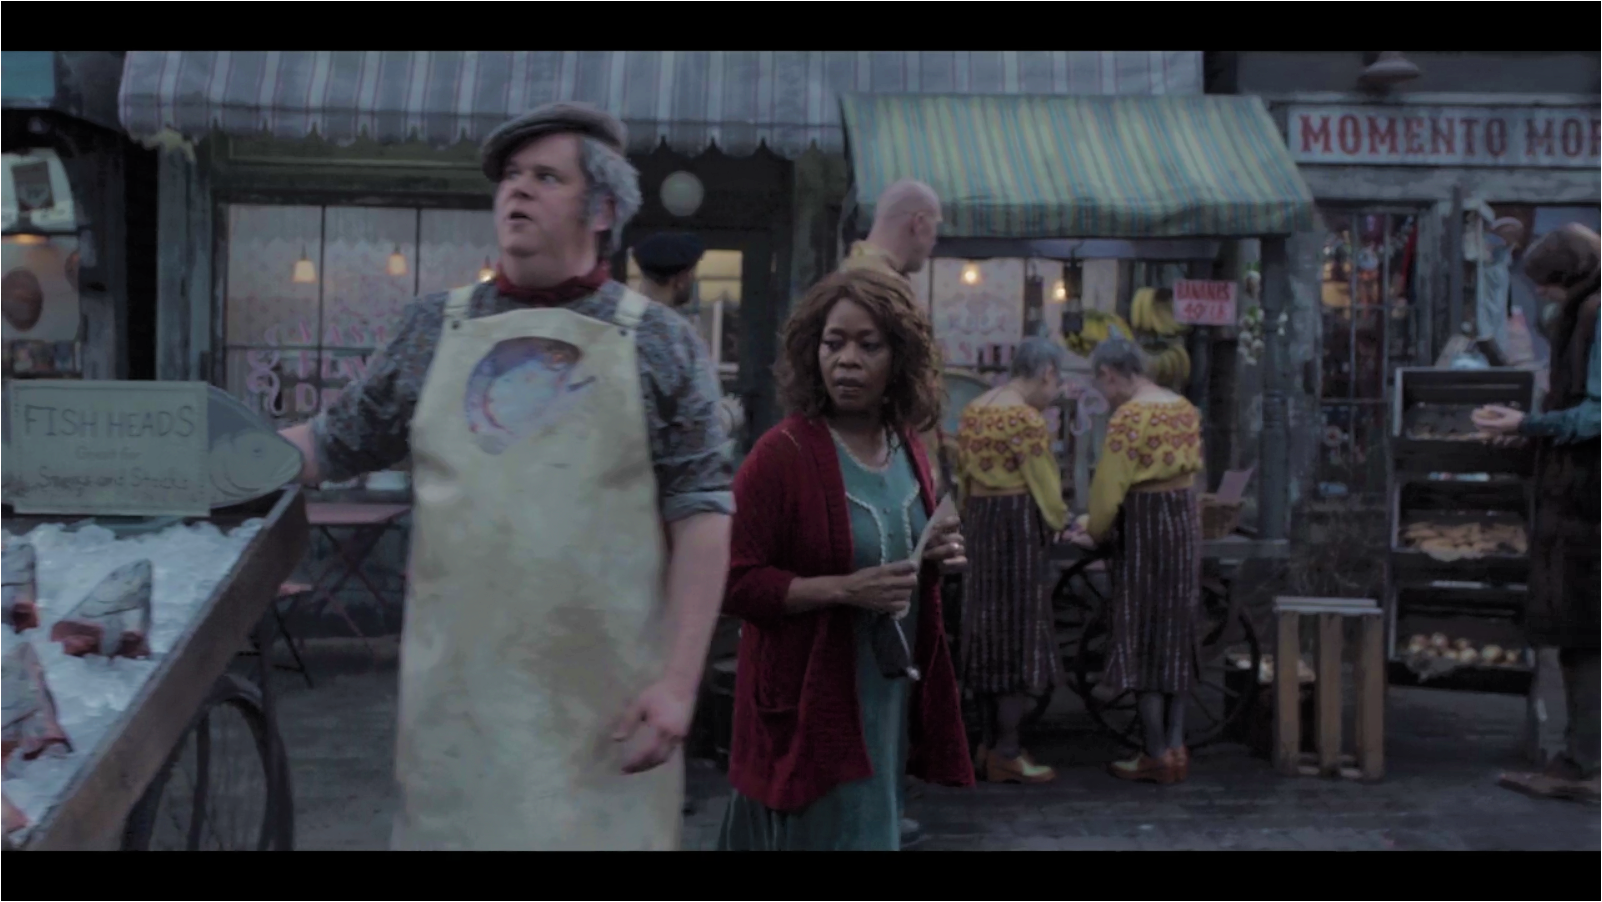 This photograph, obtained at great risk from the Netflix corporation, is one of the few remaining images of the Town Market and Petting Zoo before Hurricane Herman. It must have been taken shortly before the storm, as evidenced by the many strange characters seen milling about, and the nefariously-bookish fish head vendor in the foreground.